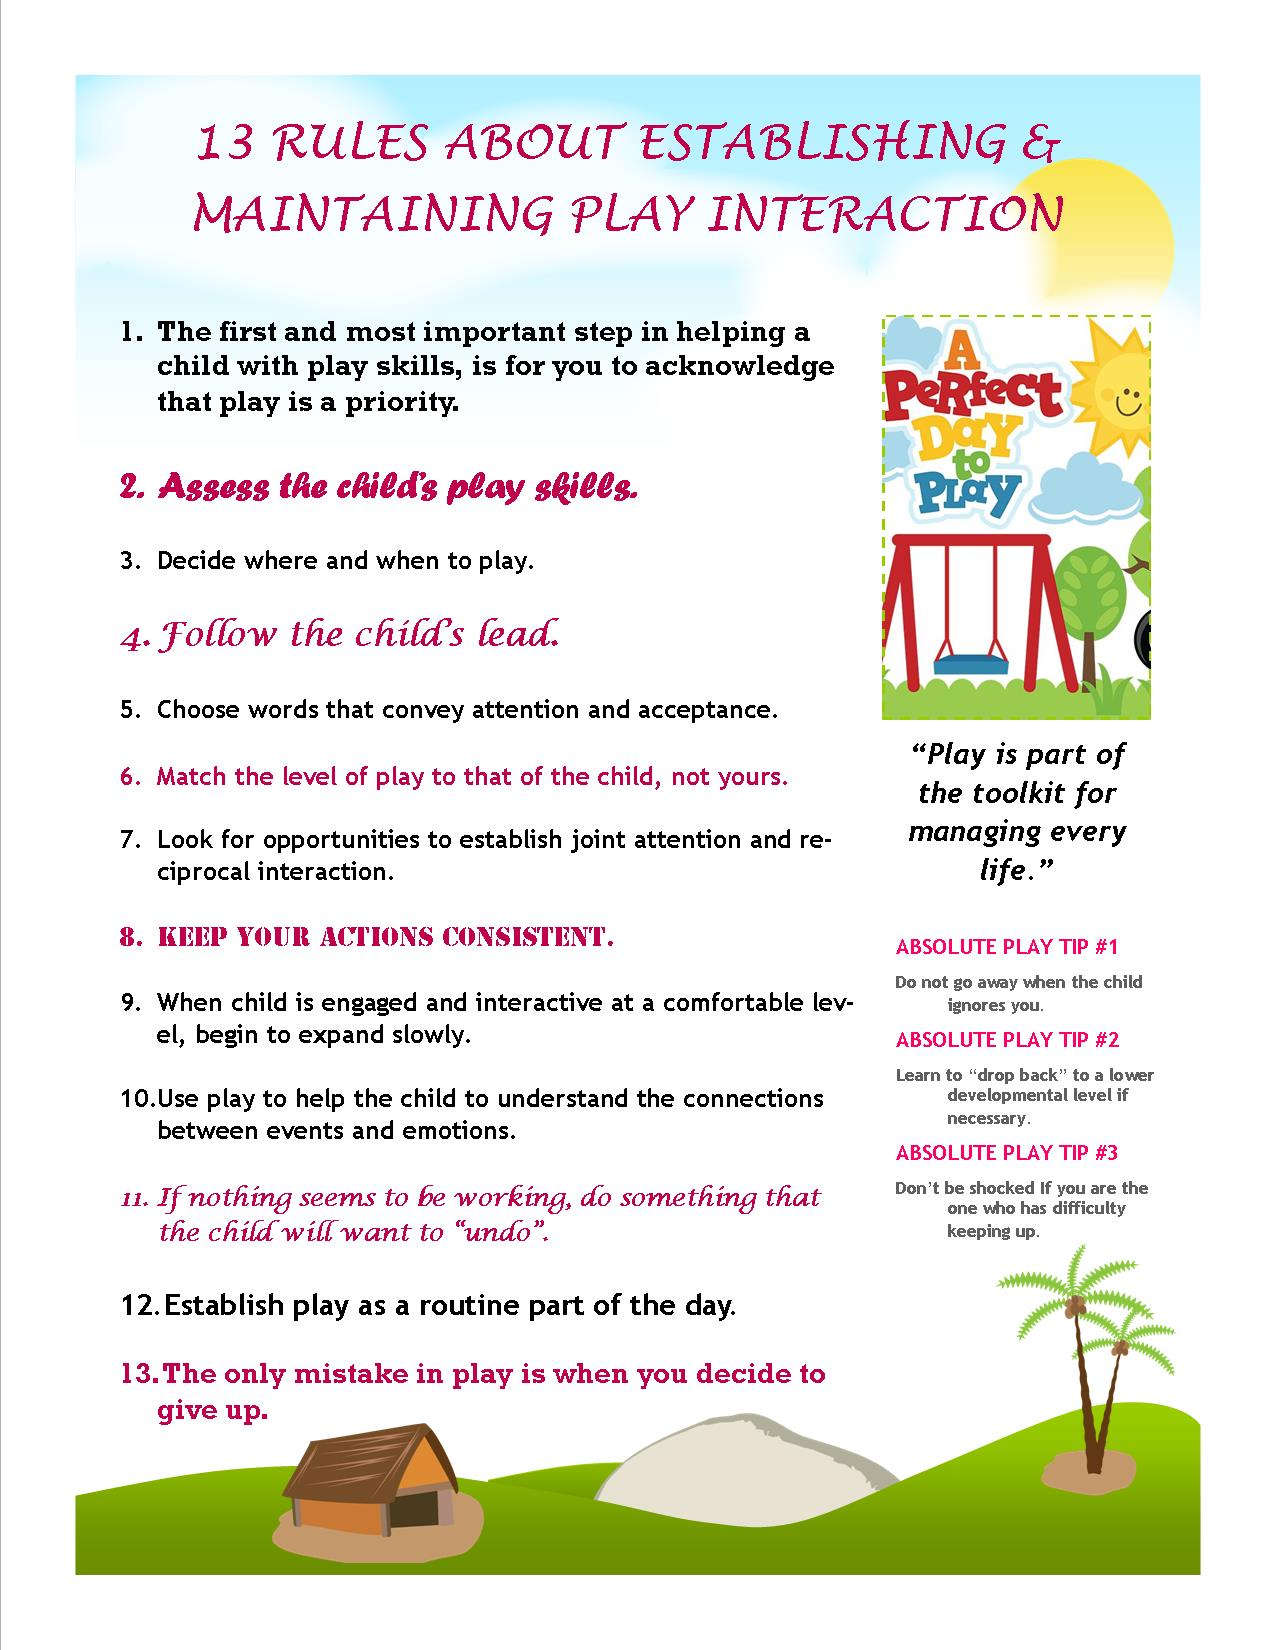 13 Rules About Play